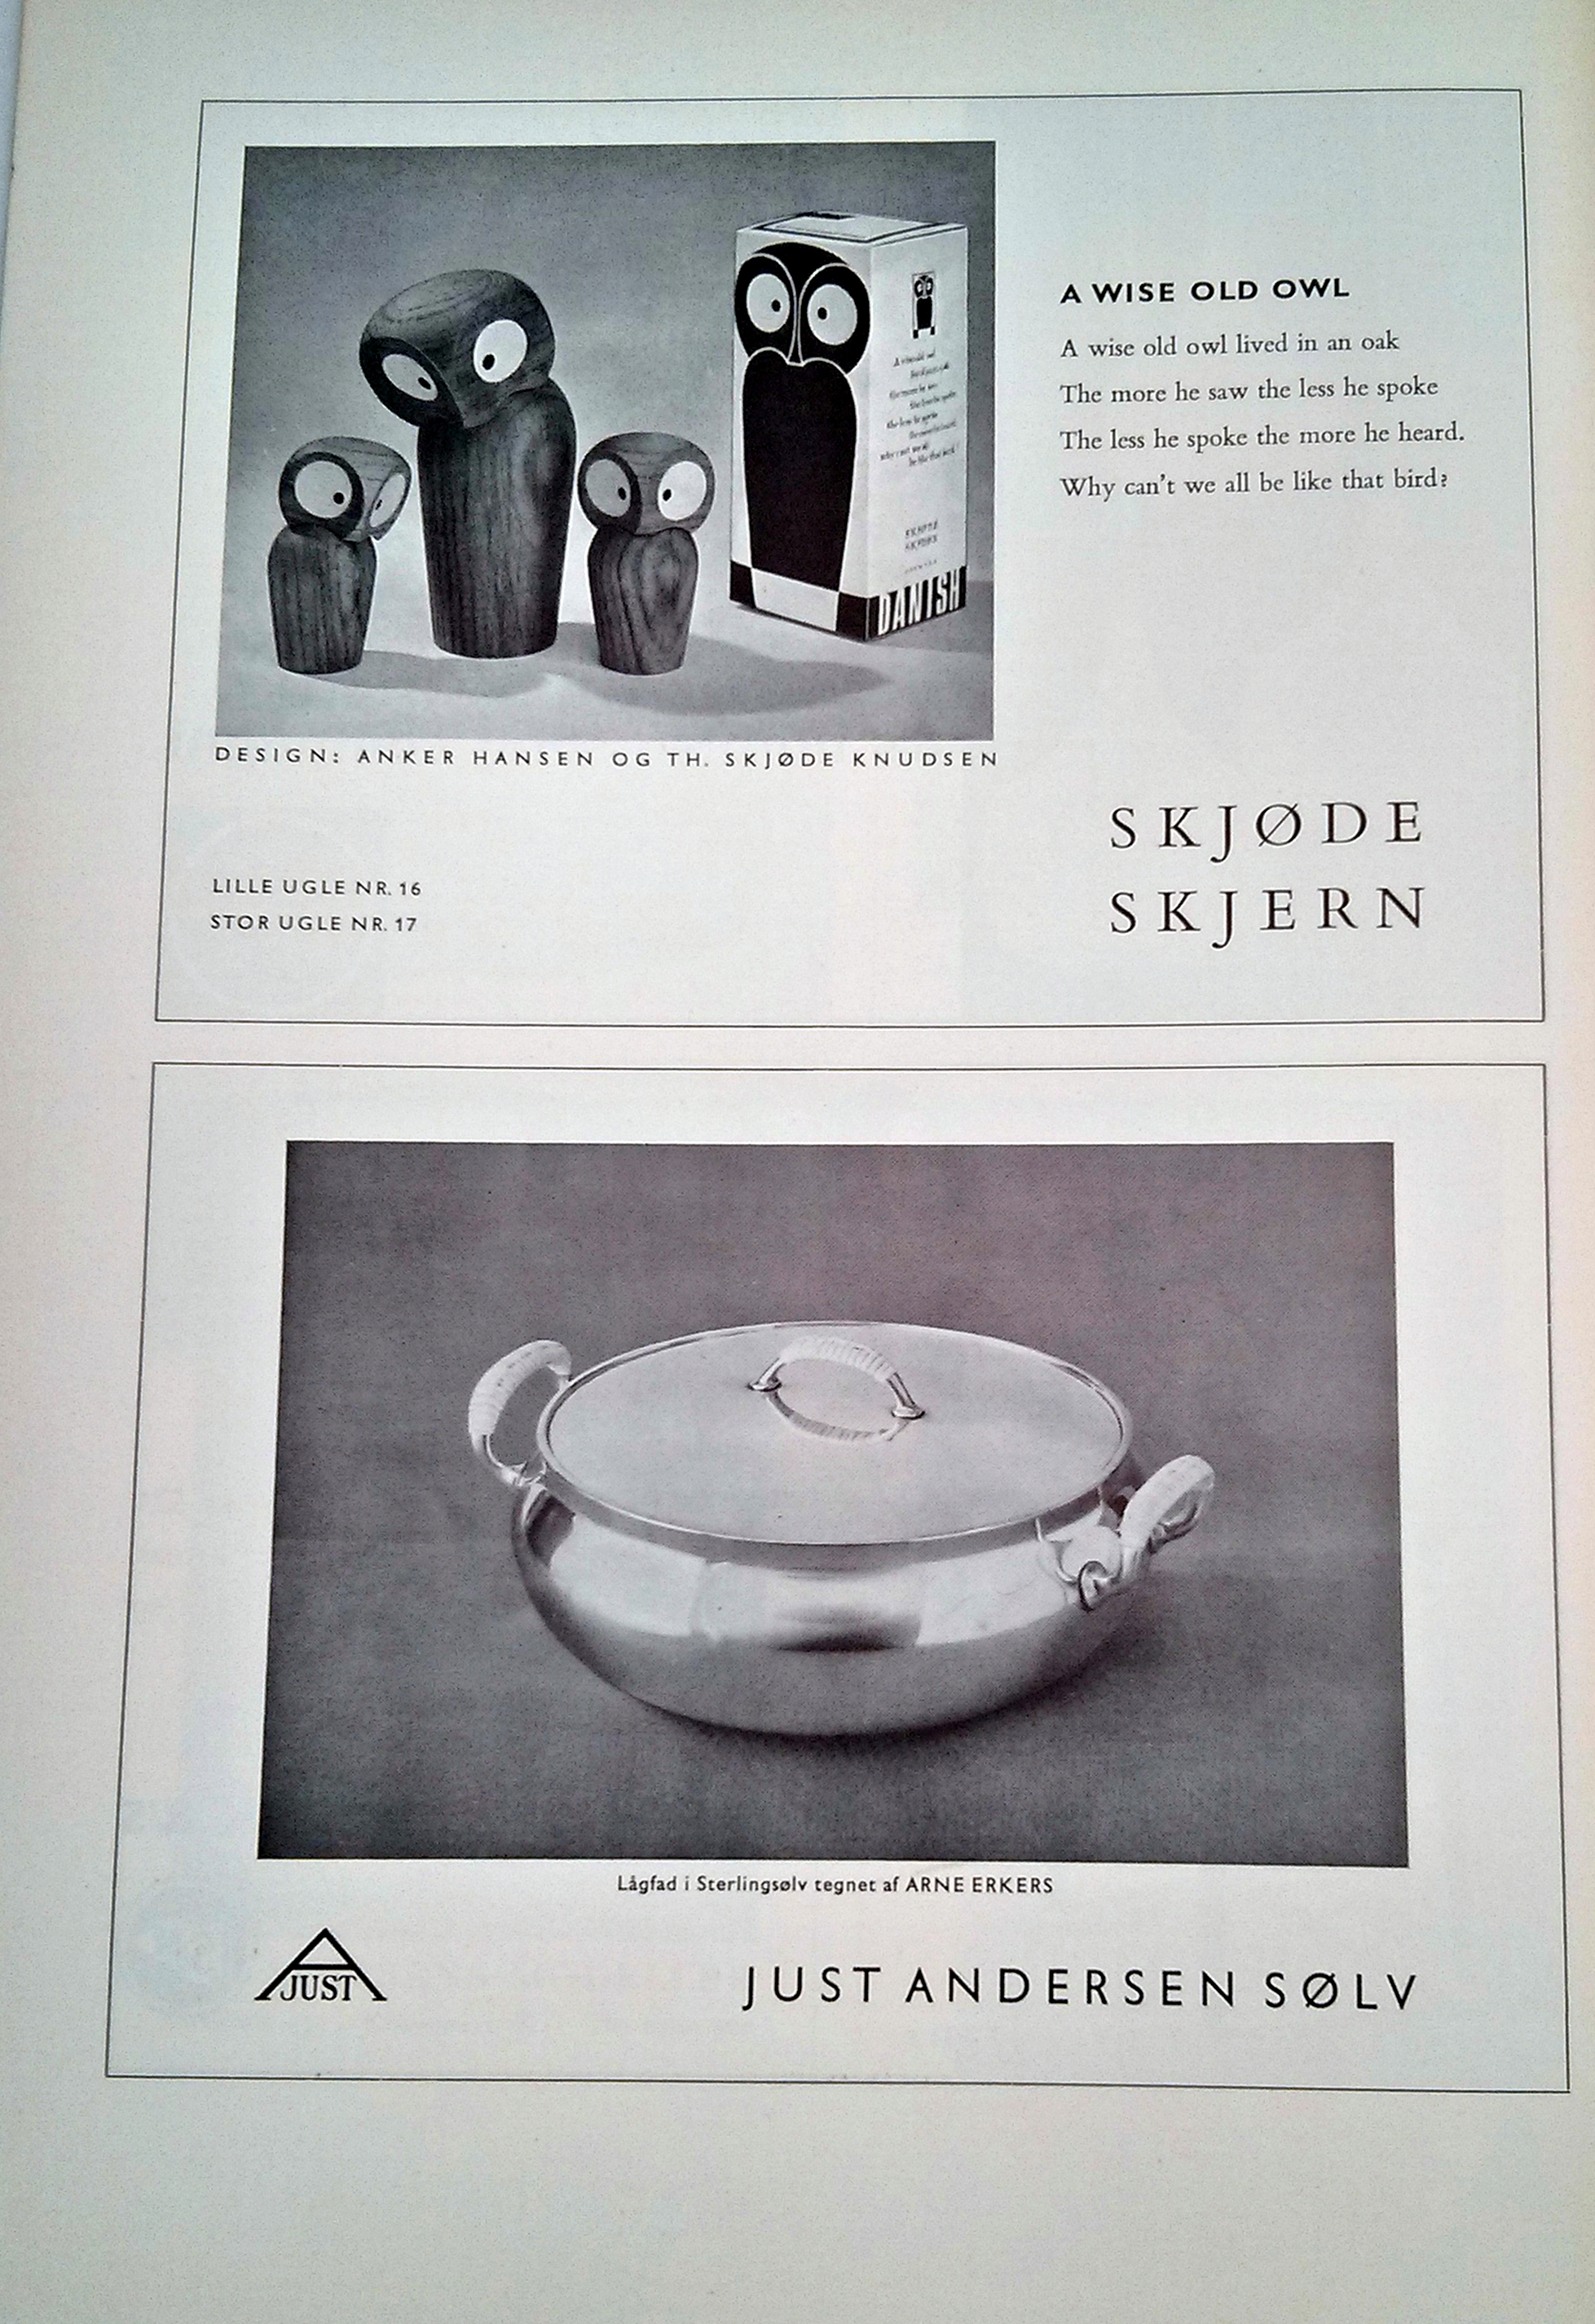 """A few old advertisements for both Just Andersen, featuring one of their beautiful pots. The Skjode Skjern advertisement shows a few of the whimsical wooden creatures in our collection and a poem.  """"A Wise Old Owl"""" A wise old owl lived in an oak The more he saw the less he spoke The less he spoke the more he heard. Why can't we all be like that bird?"""